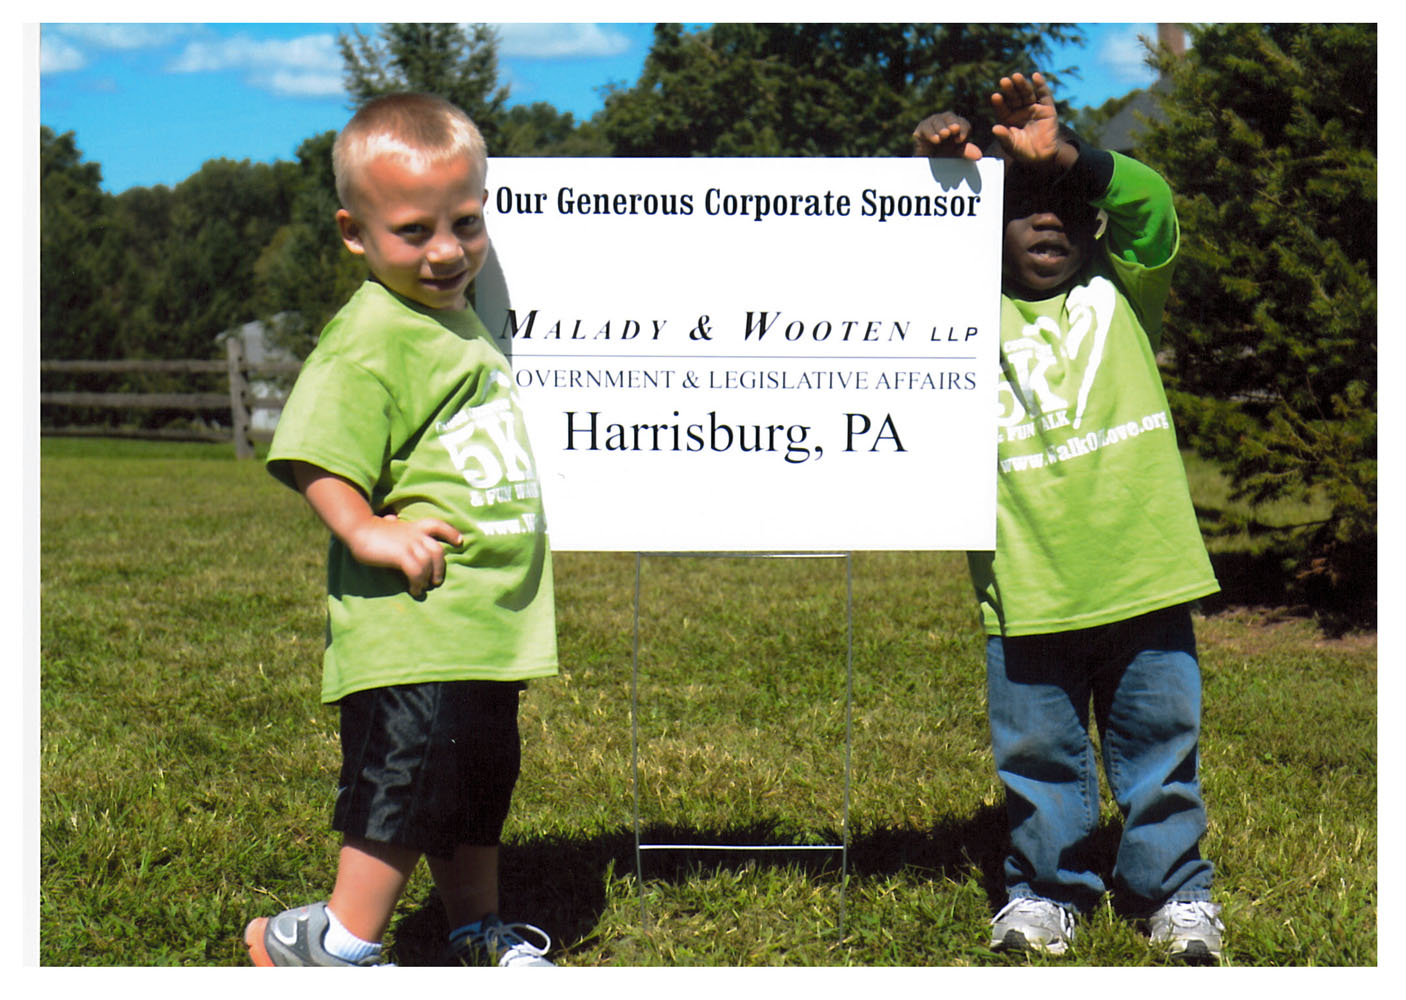 two young boys standing next to a sign that thanks Malady & Wooten government & legislative affairs for their corporate sponsorship